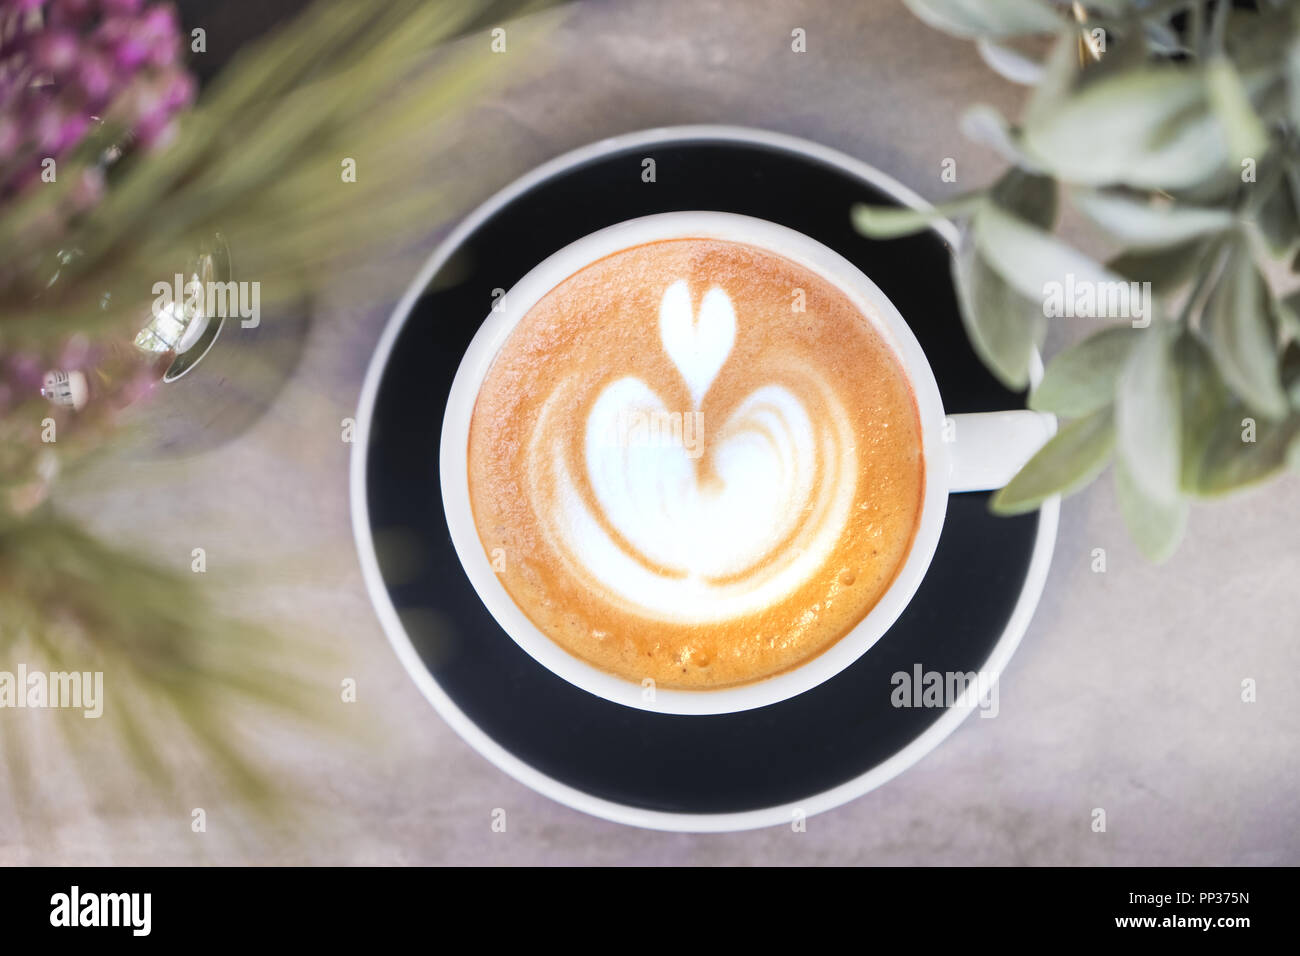 Top view of hot cappuccino coffee in black cup with latte art on grey concrete counter with green plant and floor foreground,Food and drink concept - Stock Image